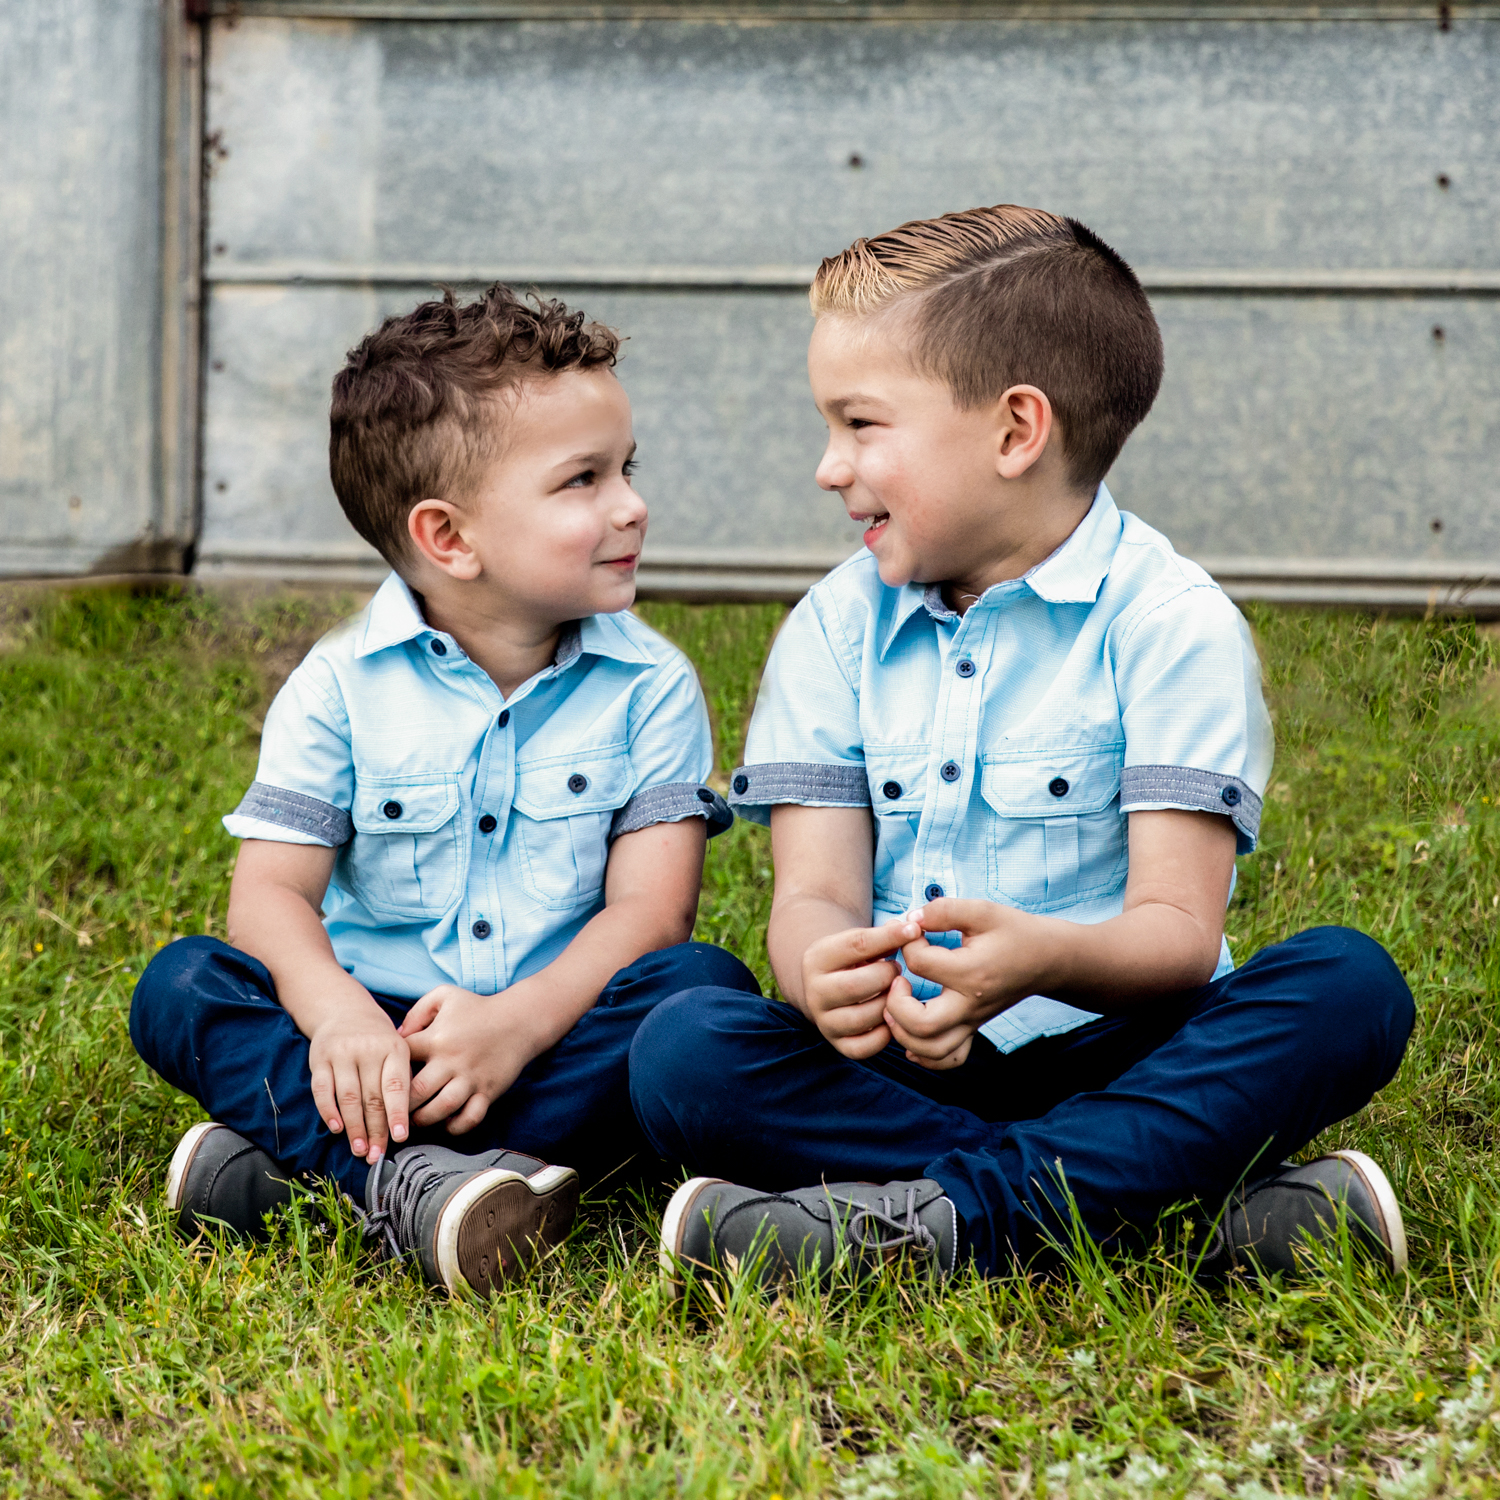 What a wonderful bond between brothers! These are special relationships.